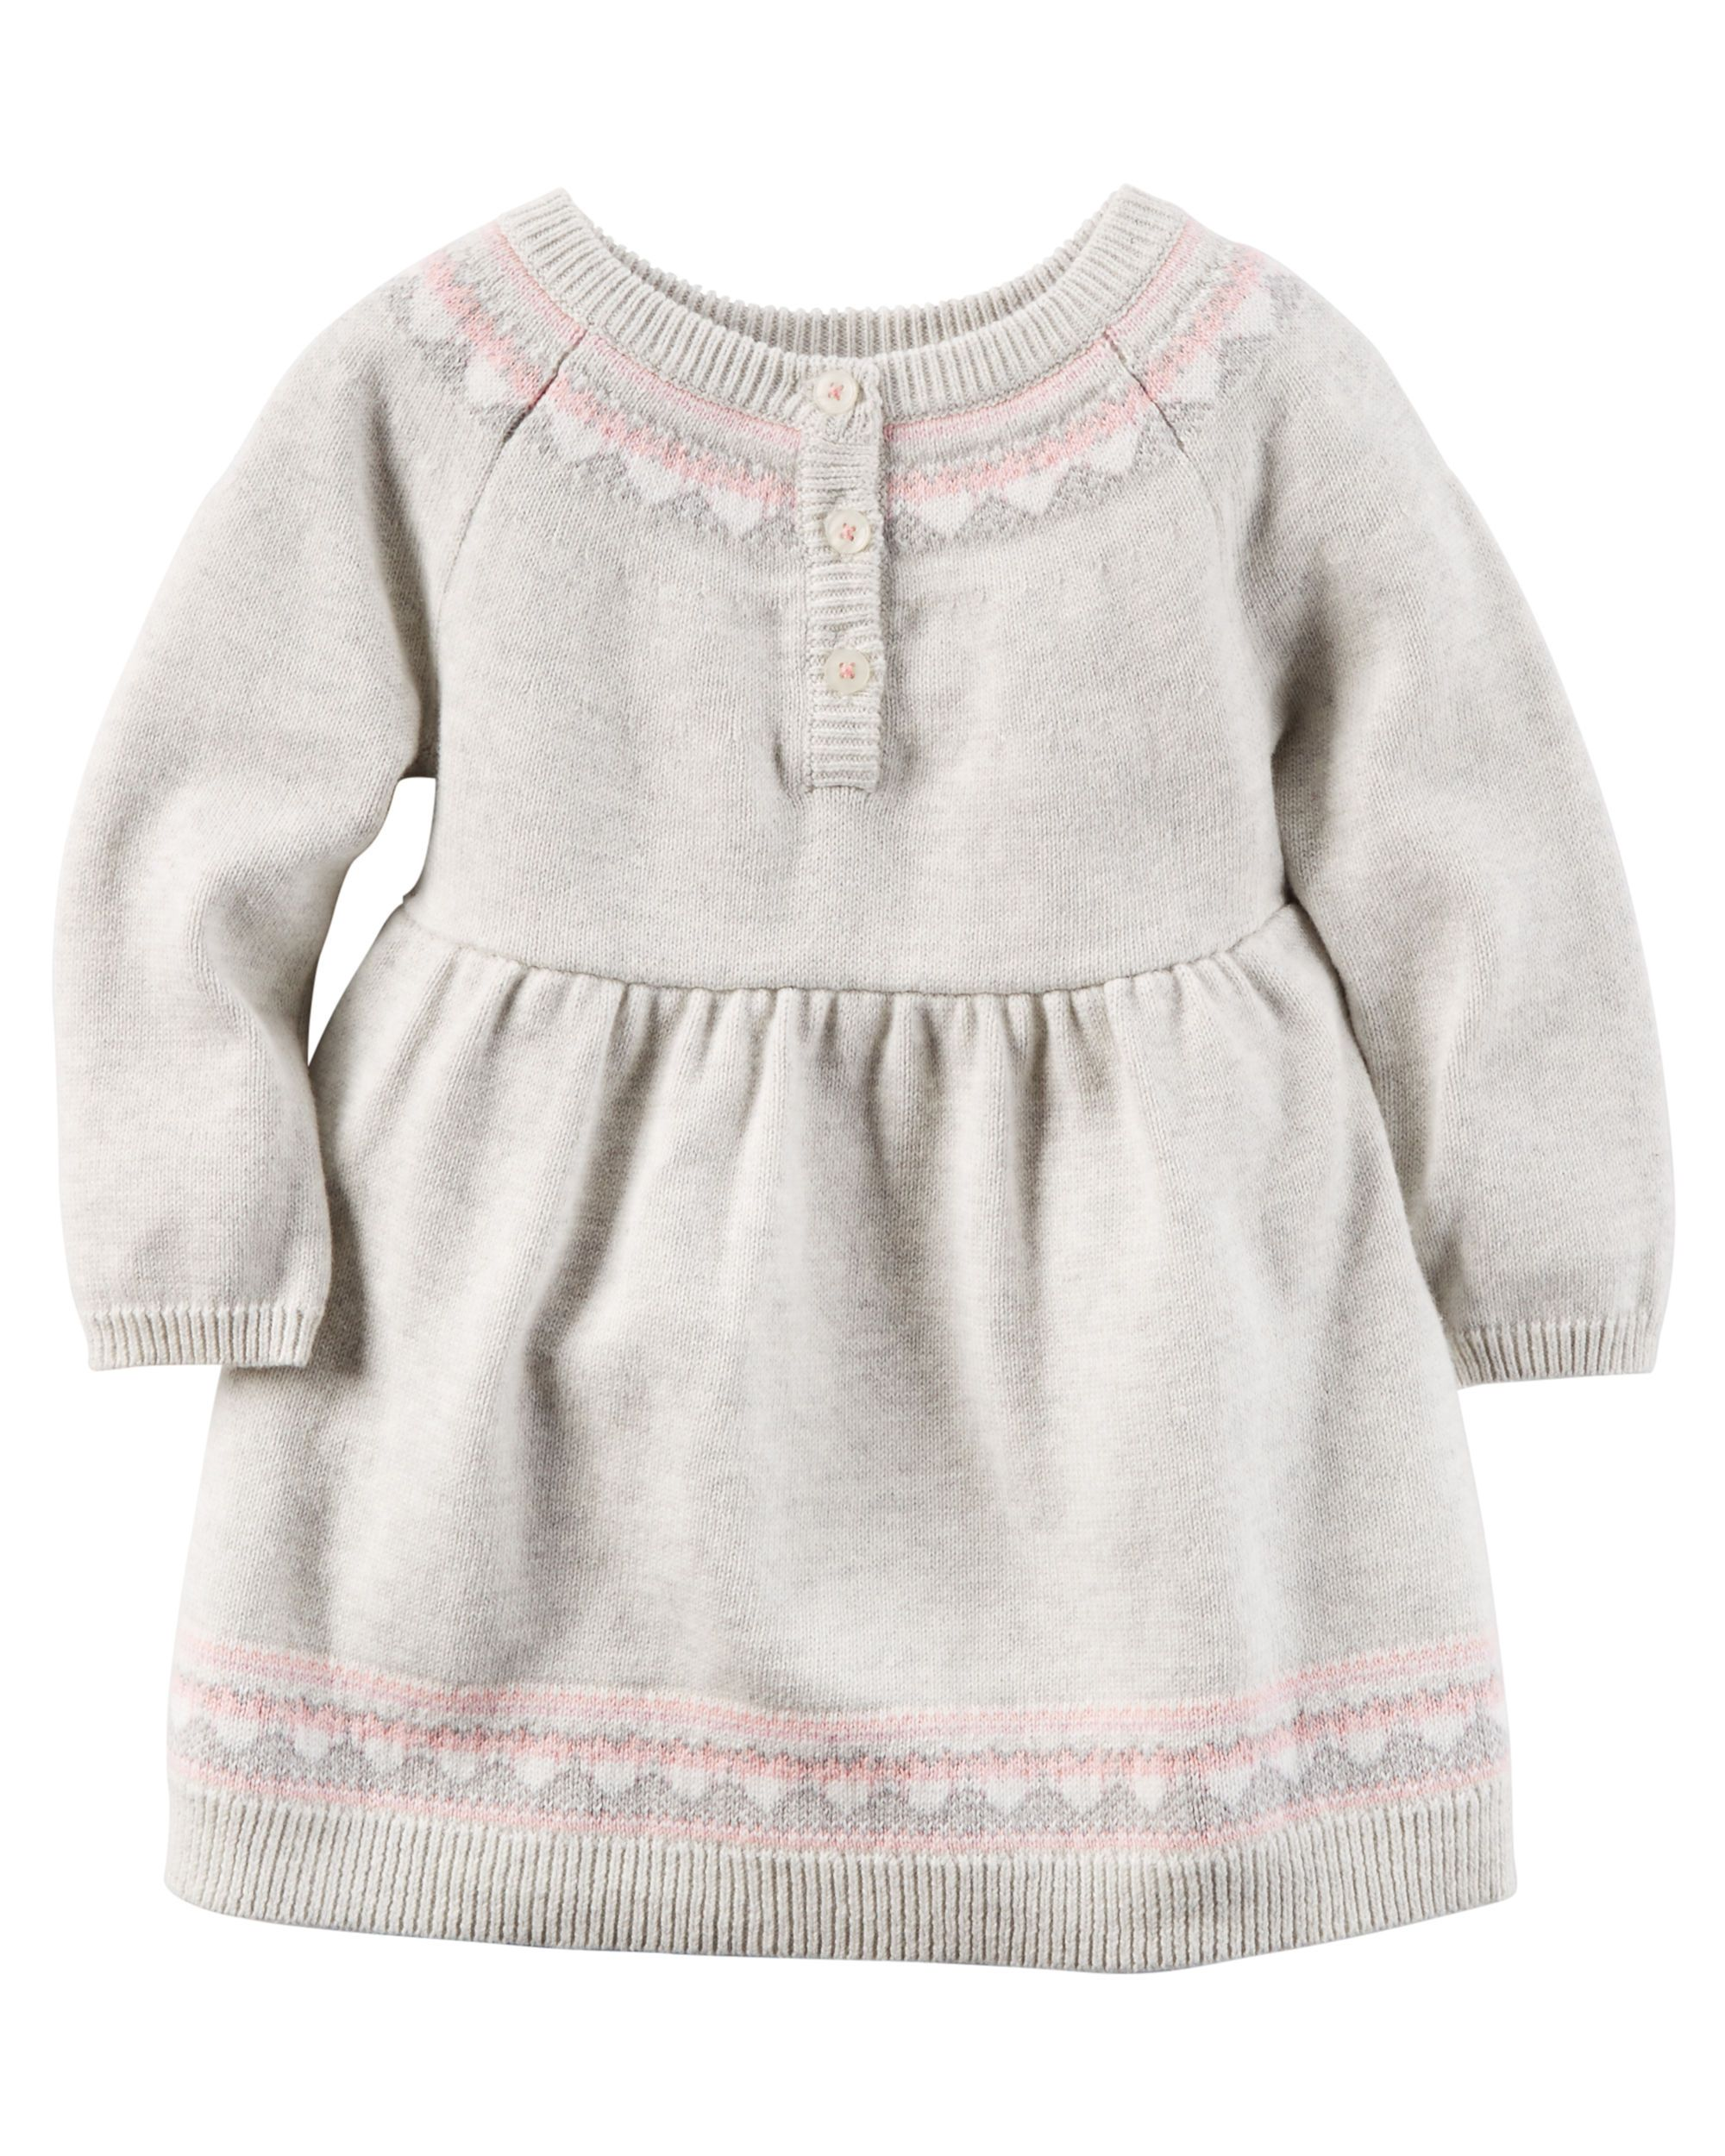 68373be71 Baby Girl Sweater Dress from Carters.com. Shop clothing ...